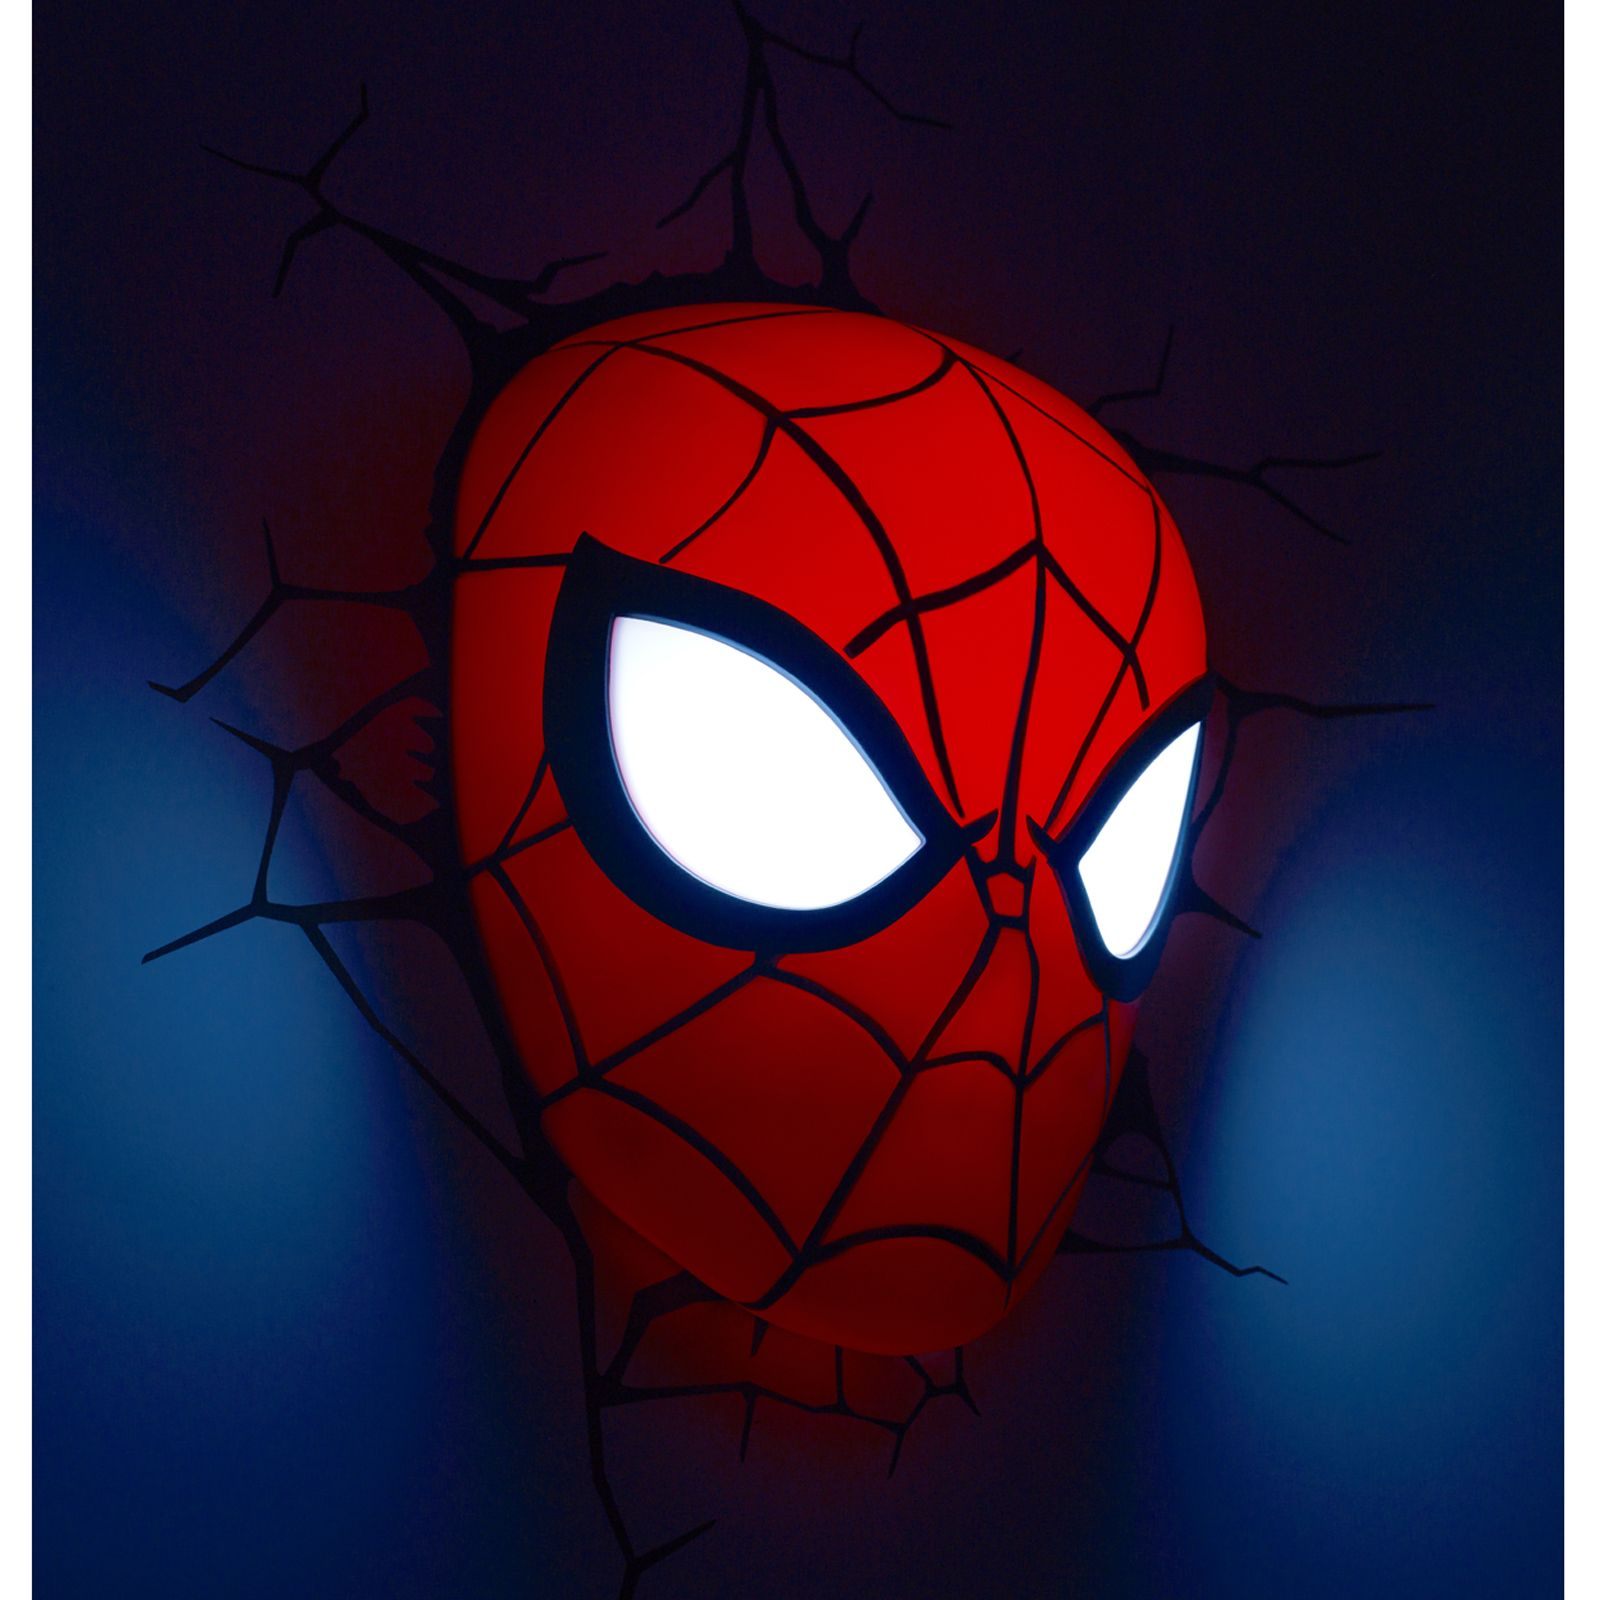 Wall Lamps Marvel : MARVEL SPIDERMAN 3D LED WALL LIGHT LAMP MASK + STICKERS NEW eBay